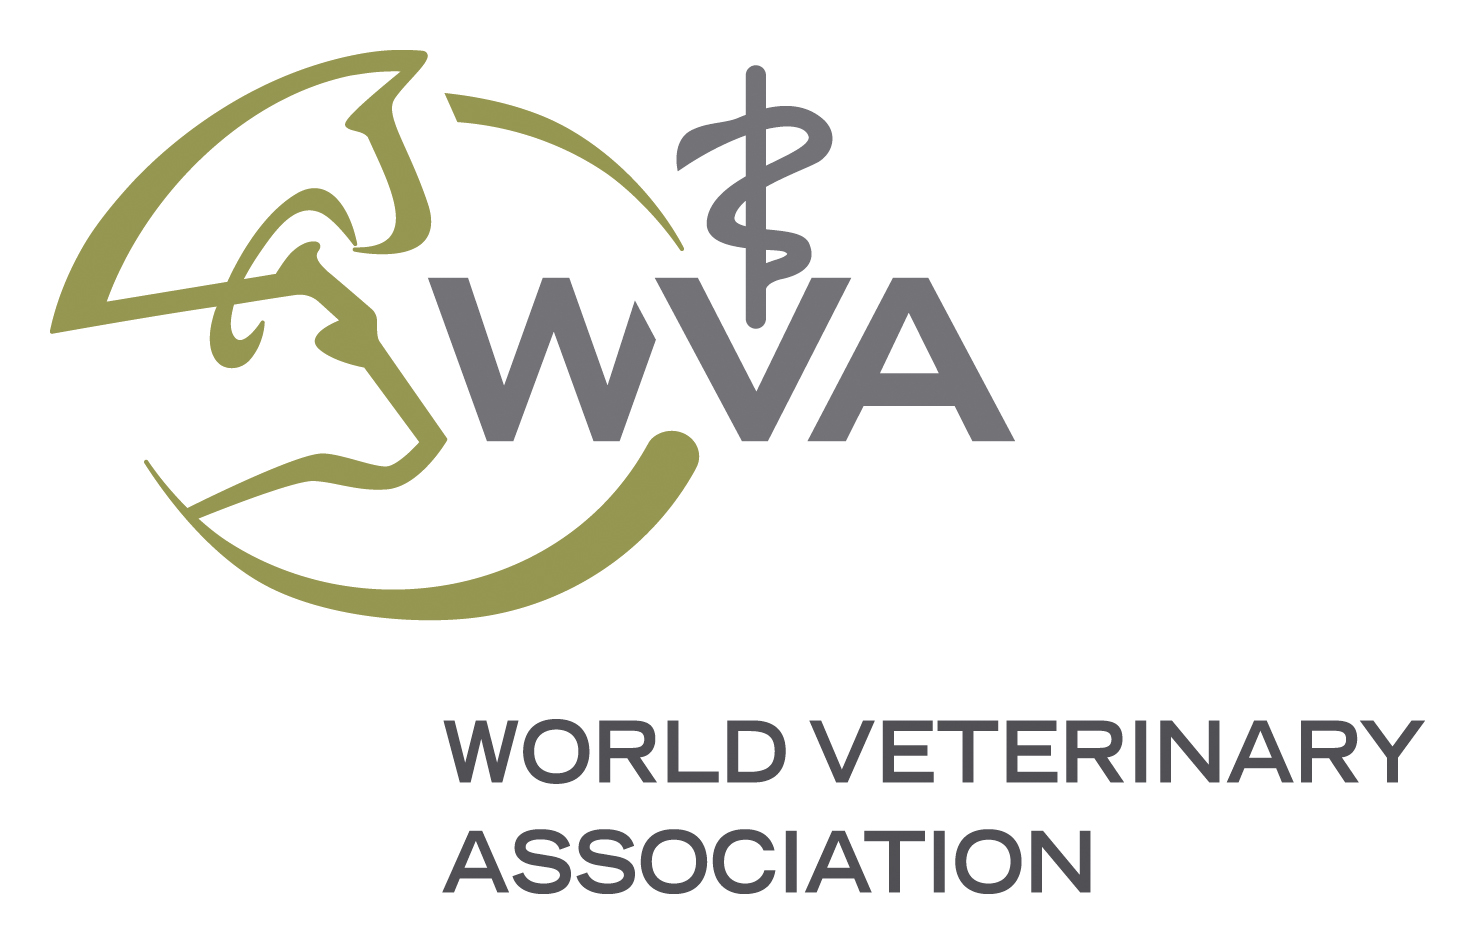 World-Veterinary-Association - Copy - Copy